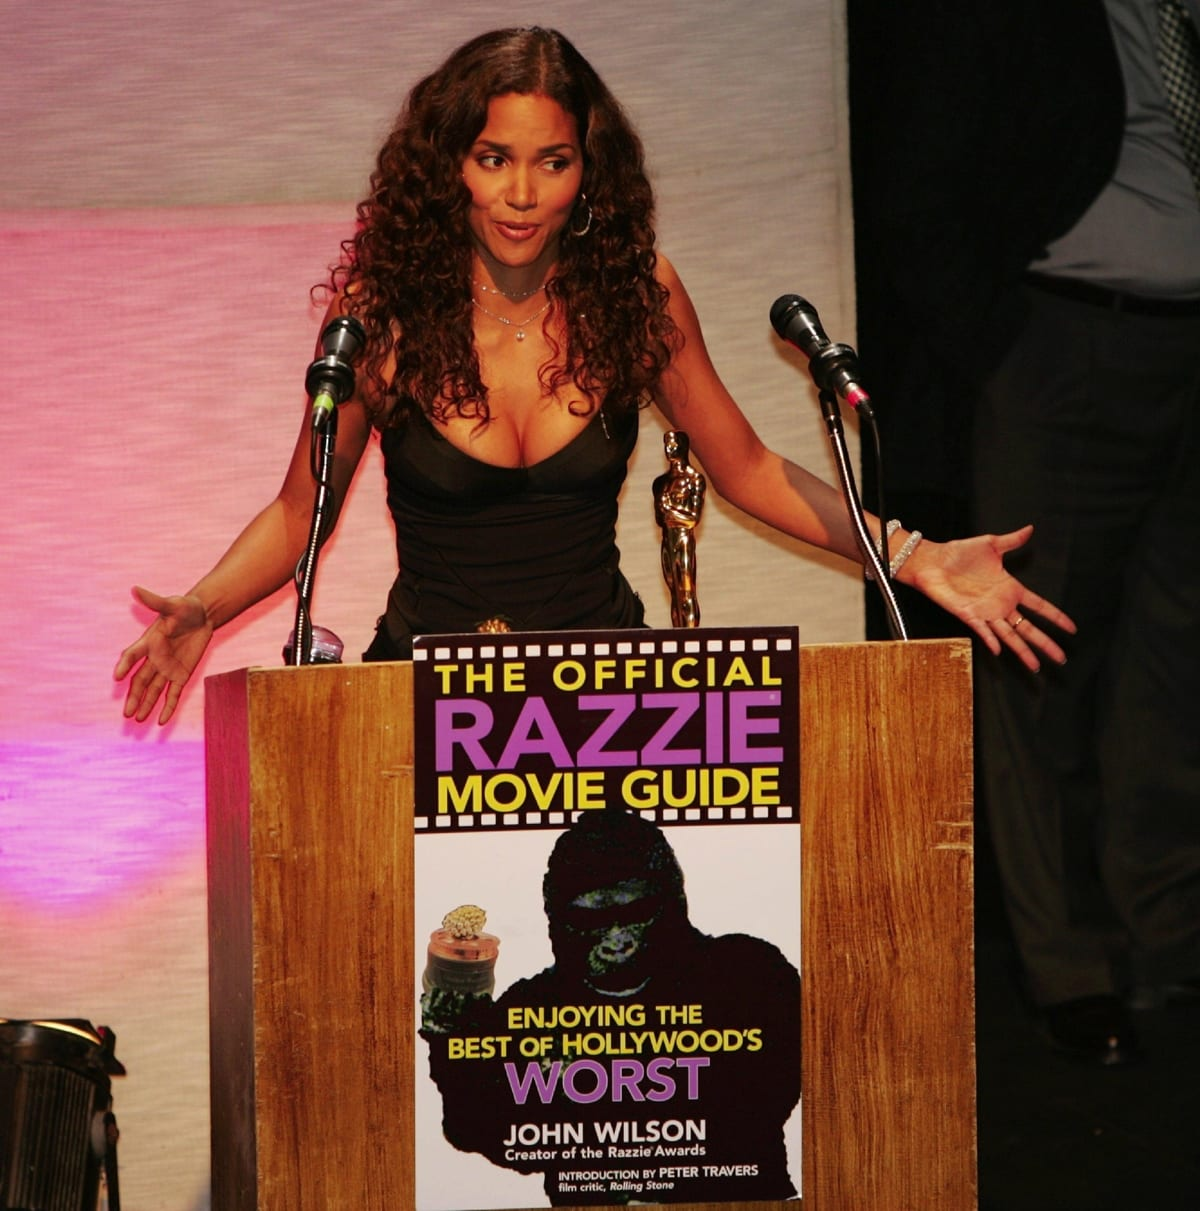 Halle Berry accepting the Razzie for Worst Actress of 2004 for her performance in 'Catwoman'